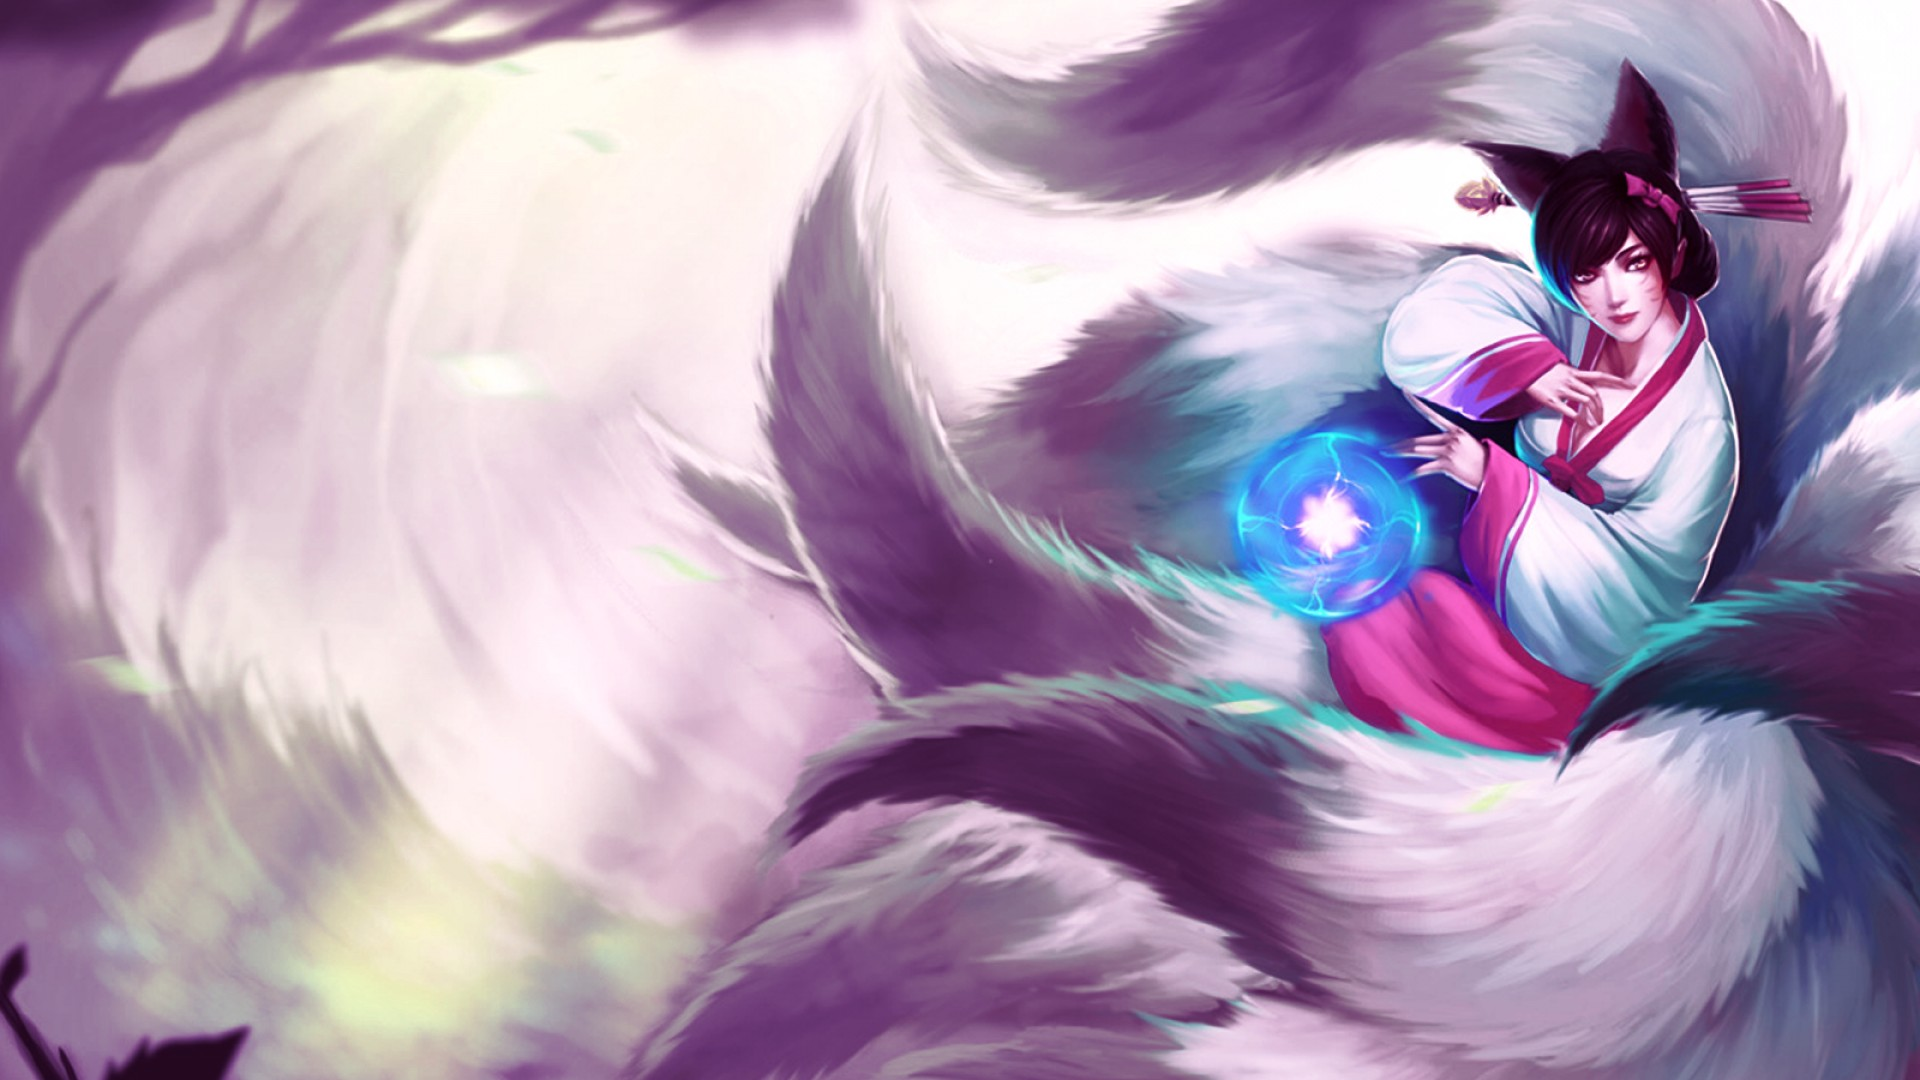 Video Game League Of Legends Sona Ahri Hd Wallpaper Background